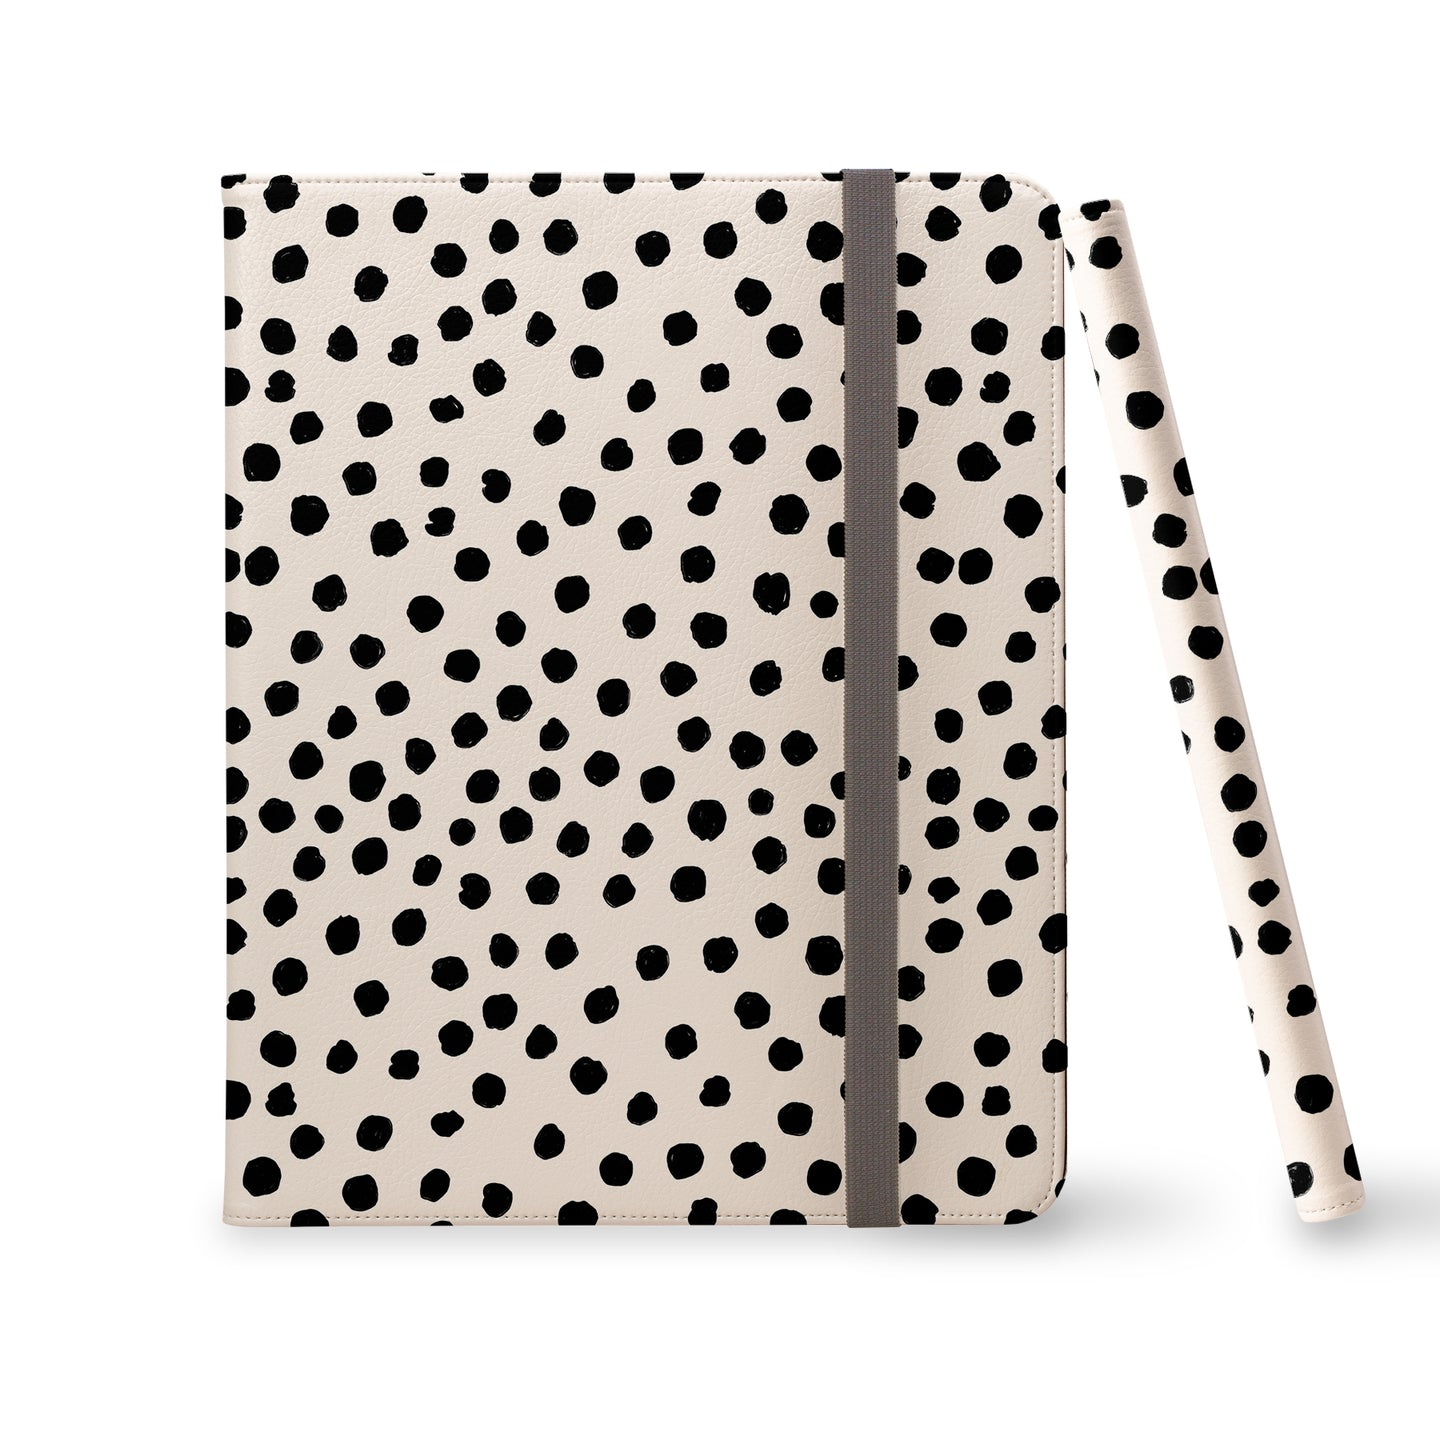 PAINTED DOTS iPad Pro Case